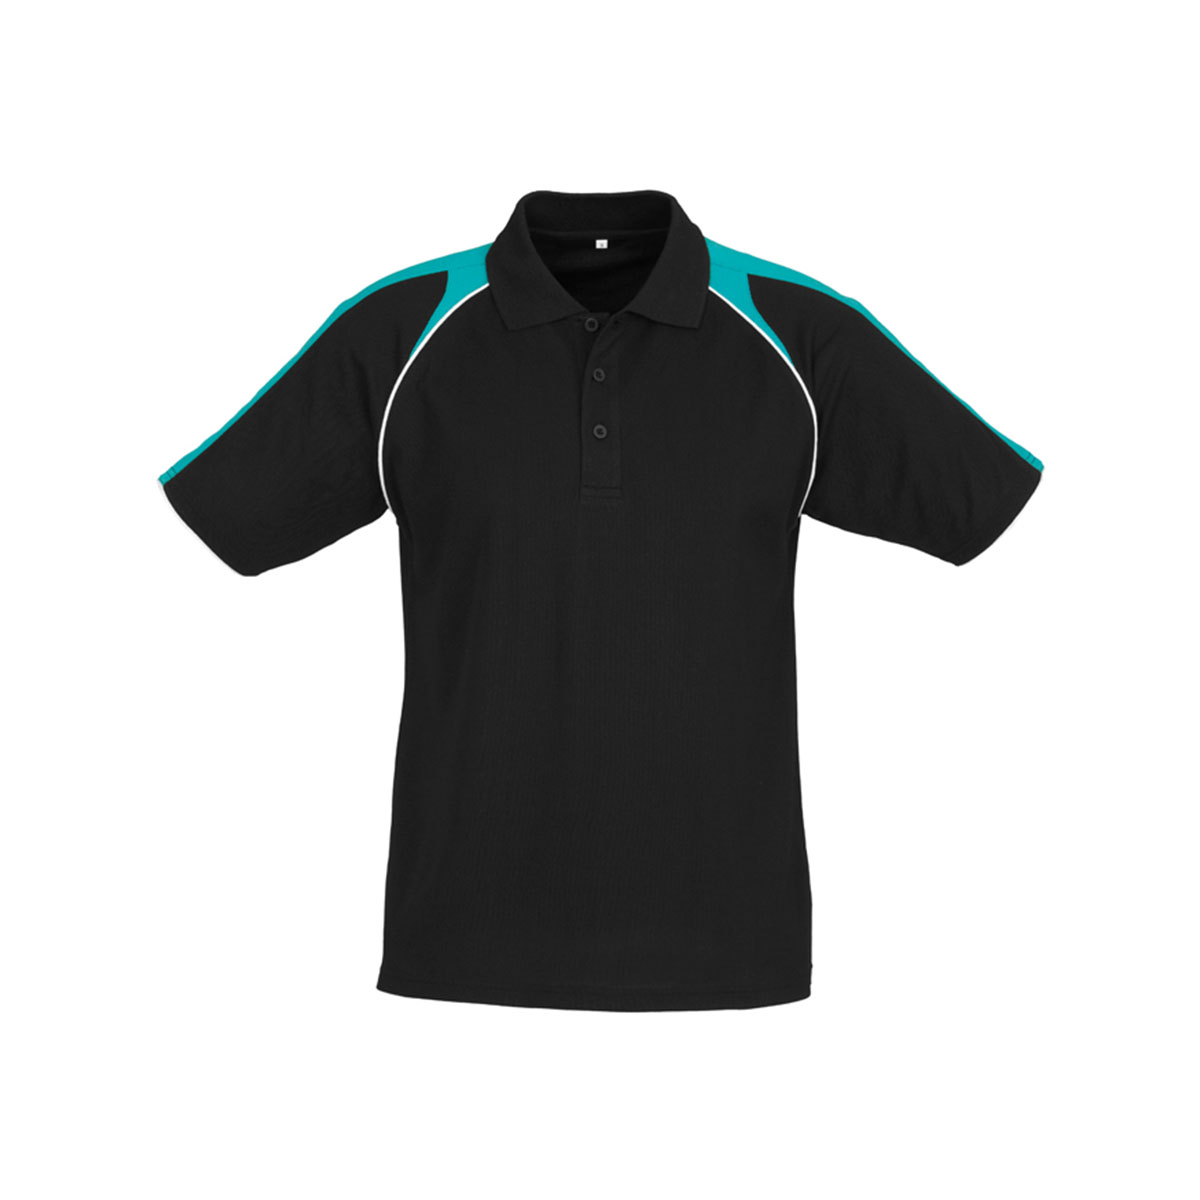 Mens Triton Polo-Black / Teal / White